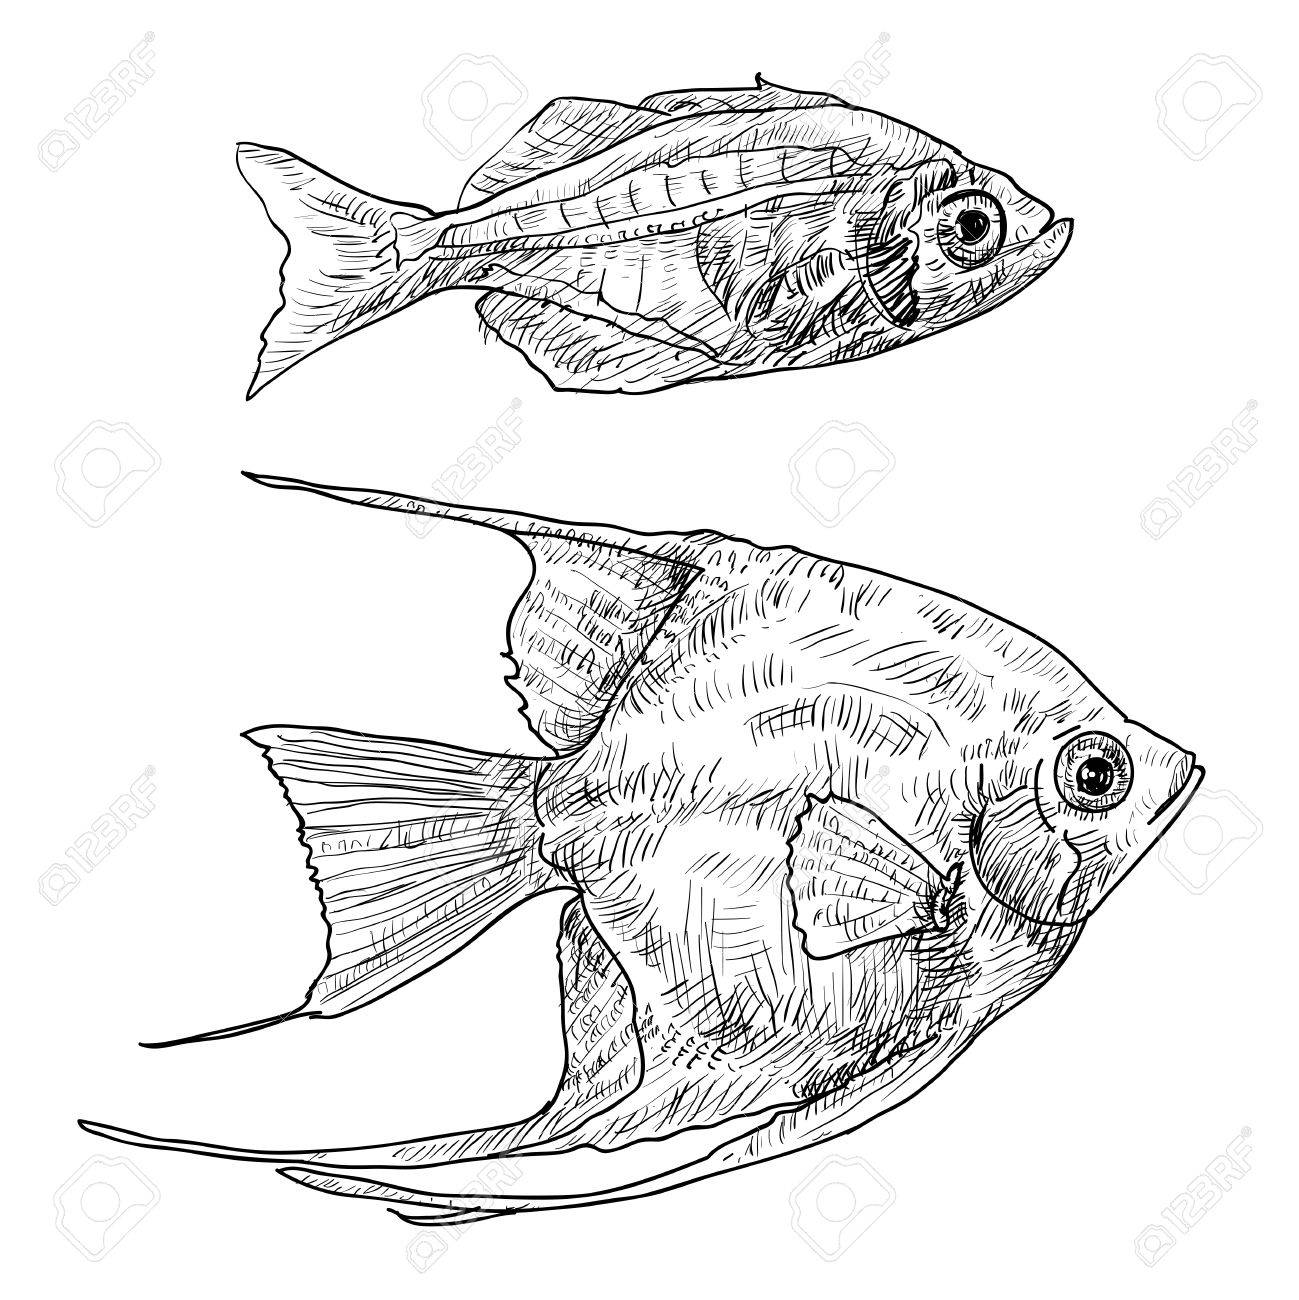 1299x1300 Angel Fish And The Fish With Stripe On Back And Belly Stock Photo